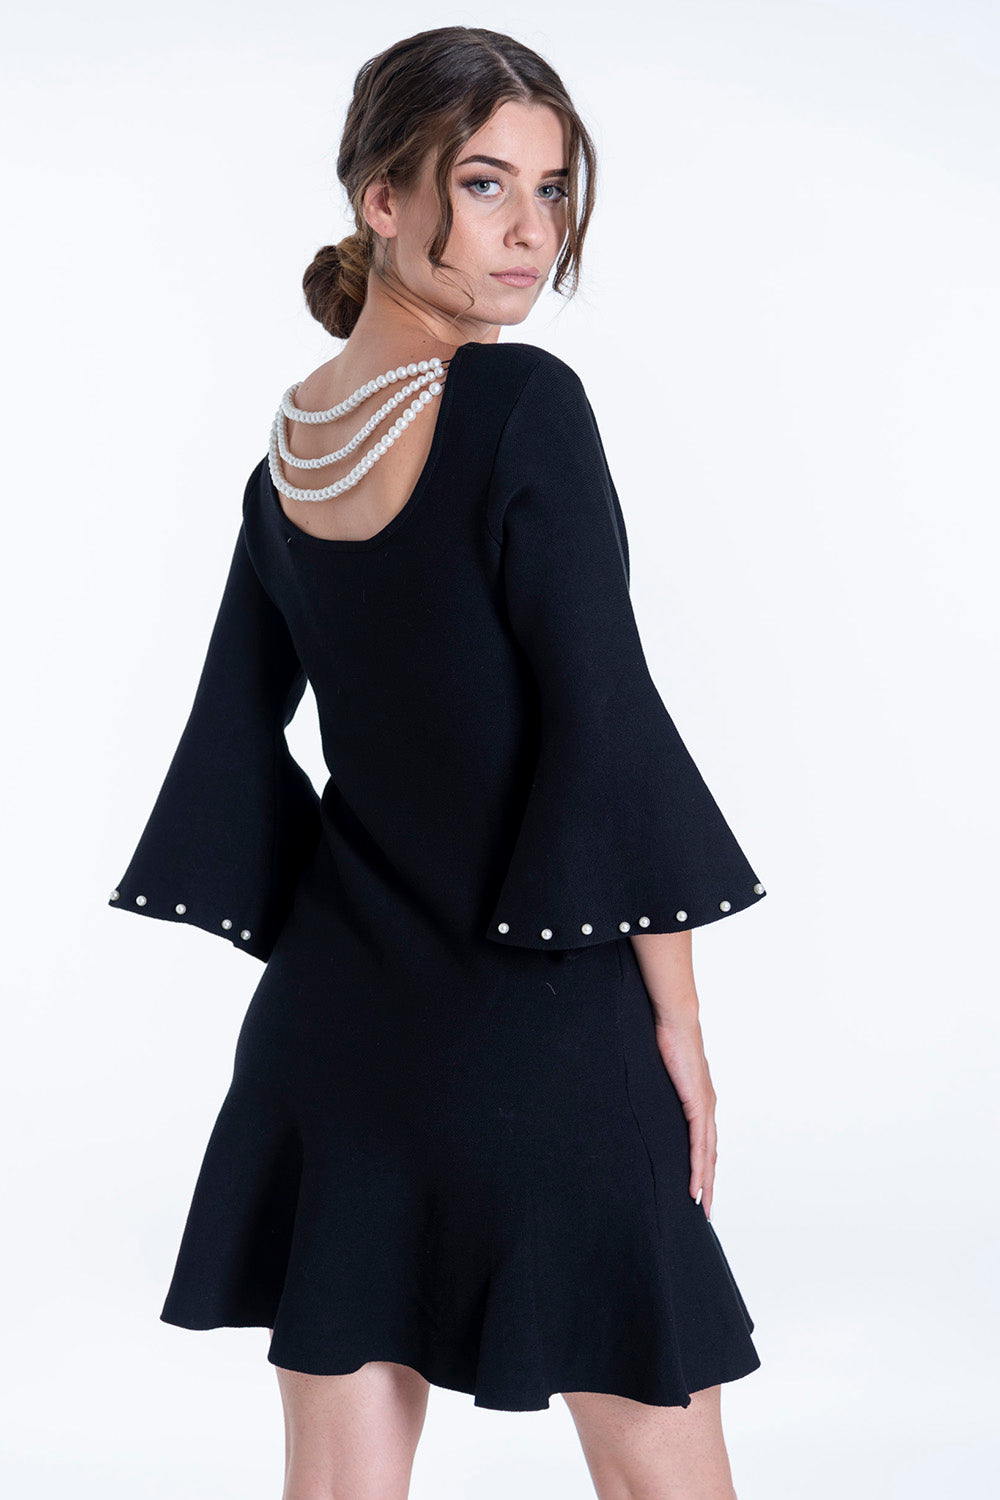 Dress with pearls in the back and bell sleeves